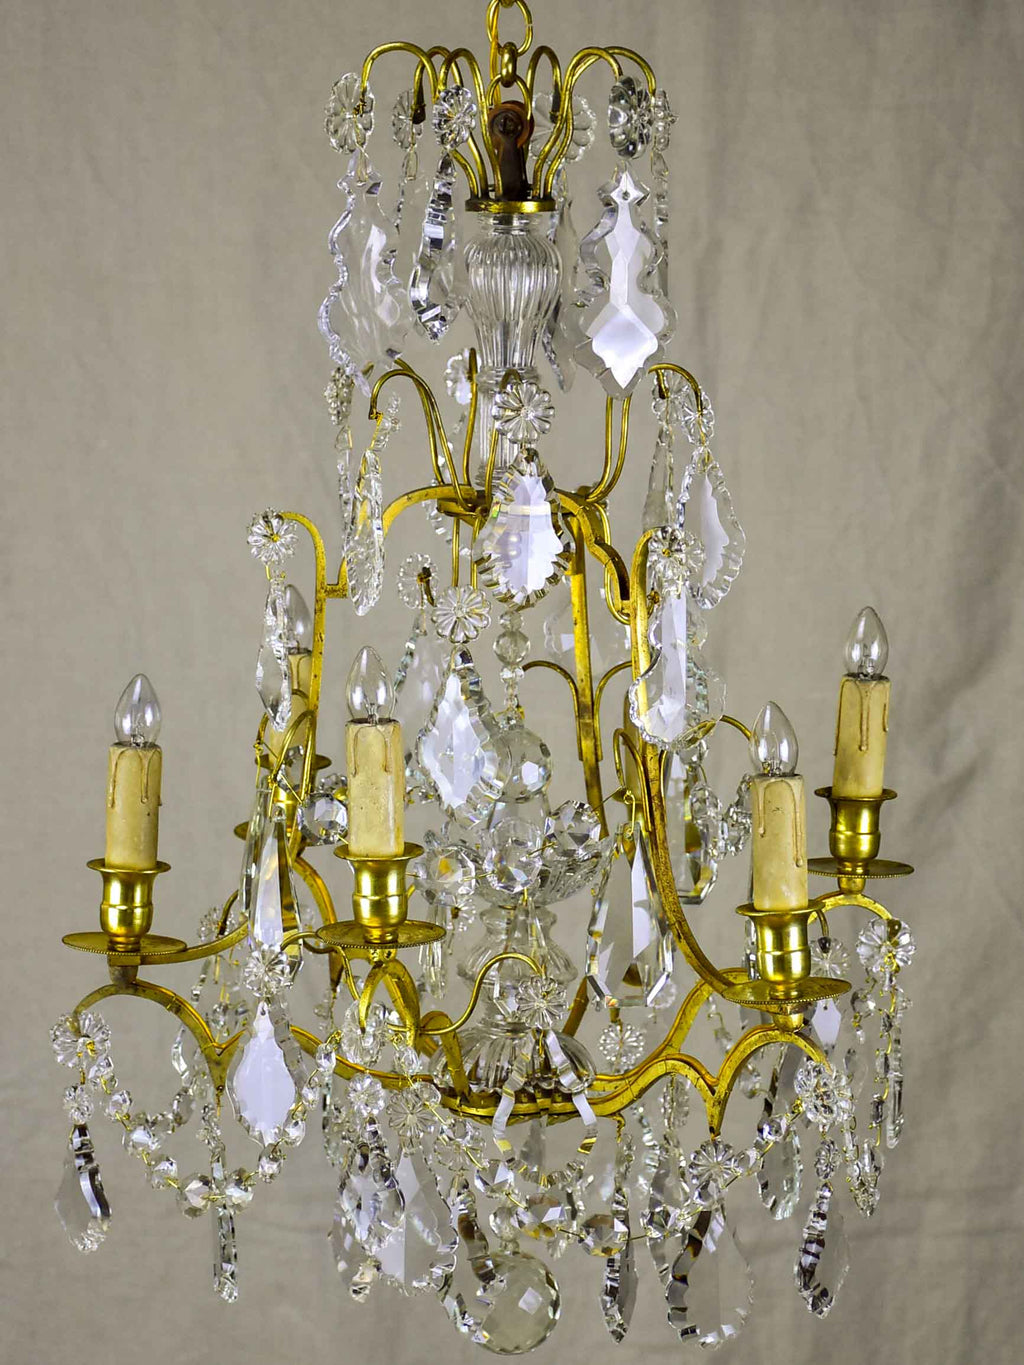 A small antique French crystal chandelier - 6 lights